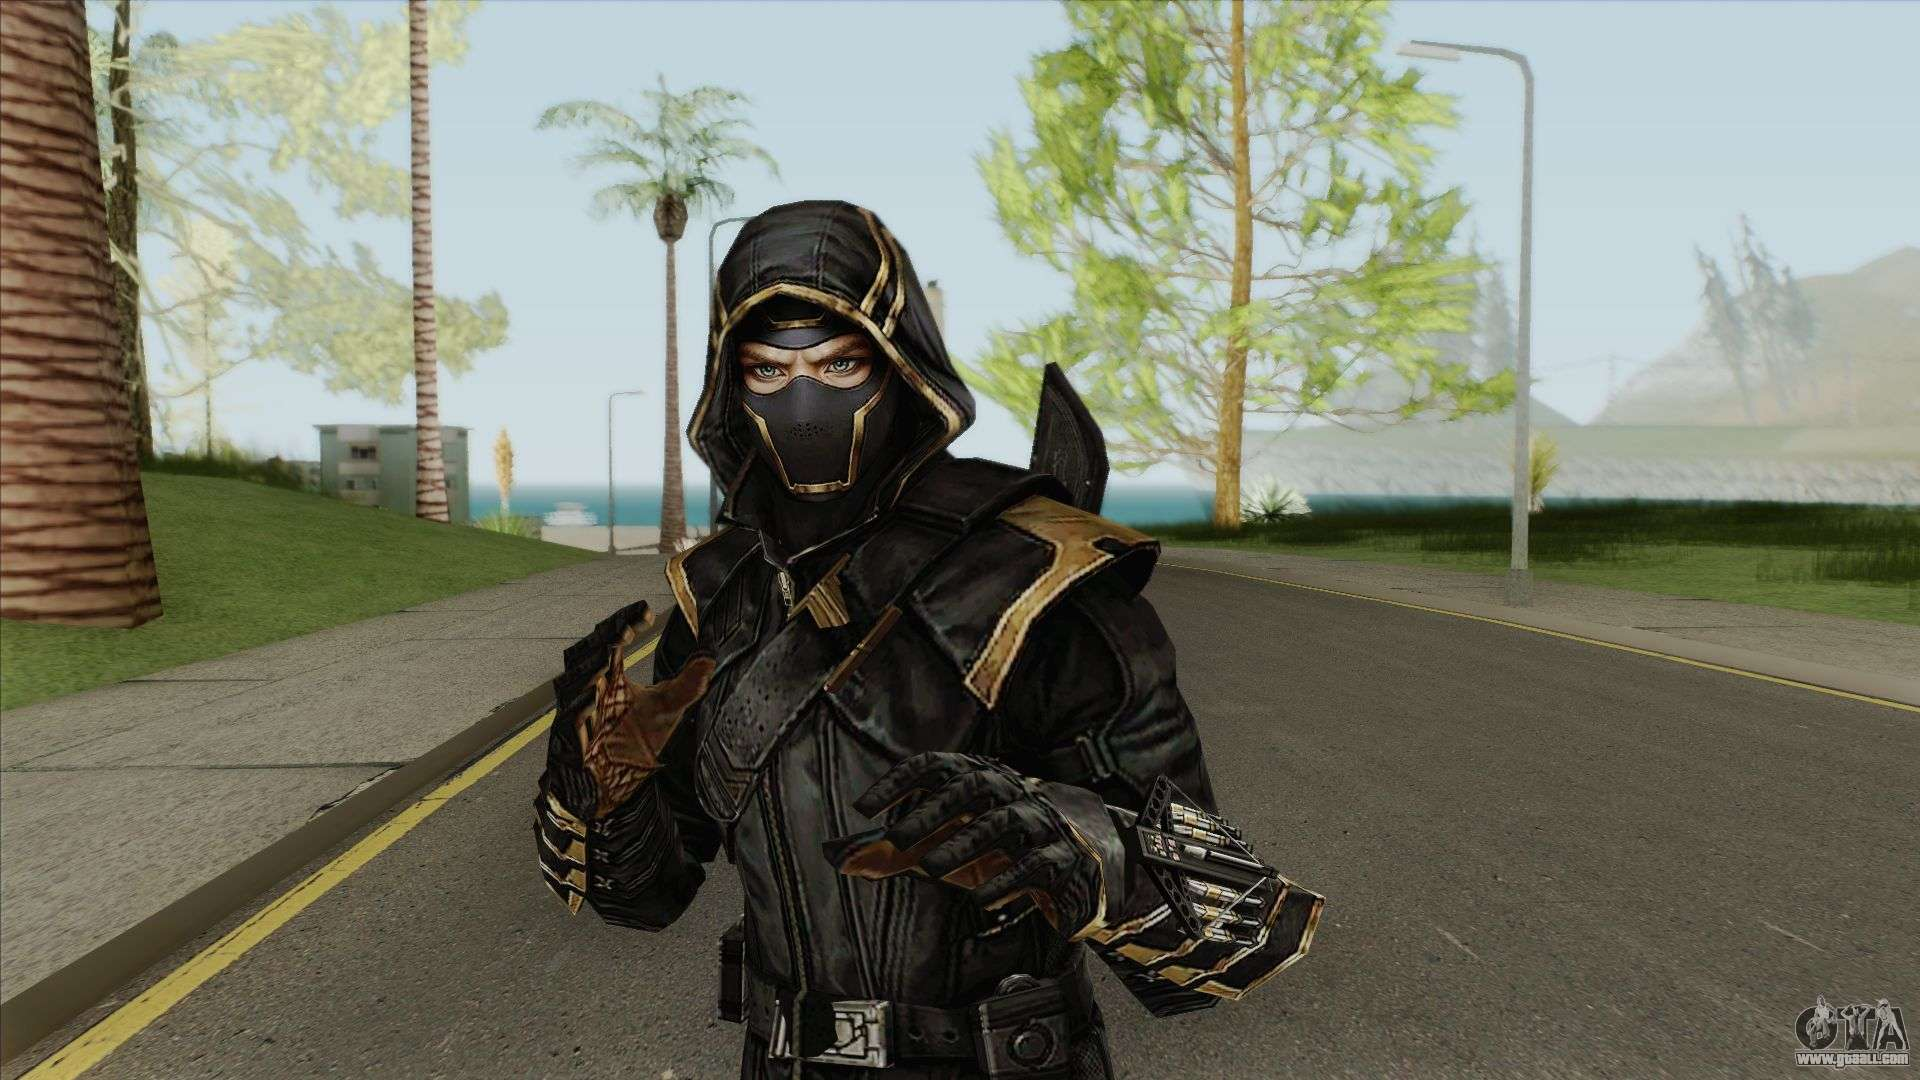 Ronin Skin From Avengers End Game For GTA San Andreas